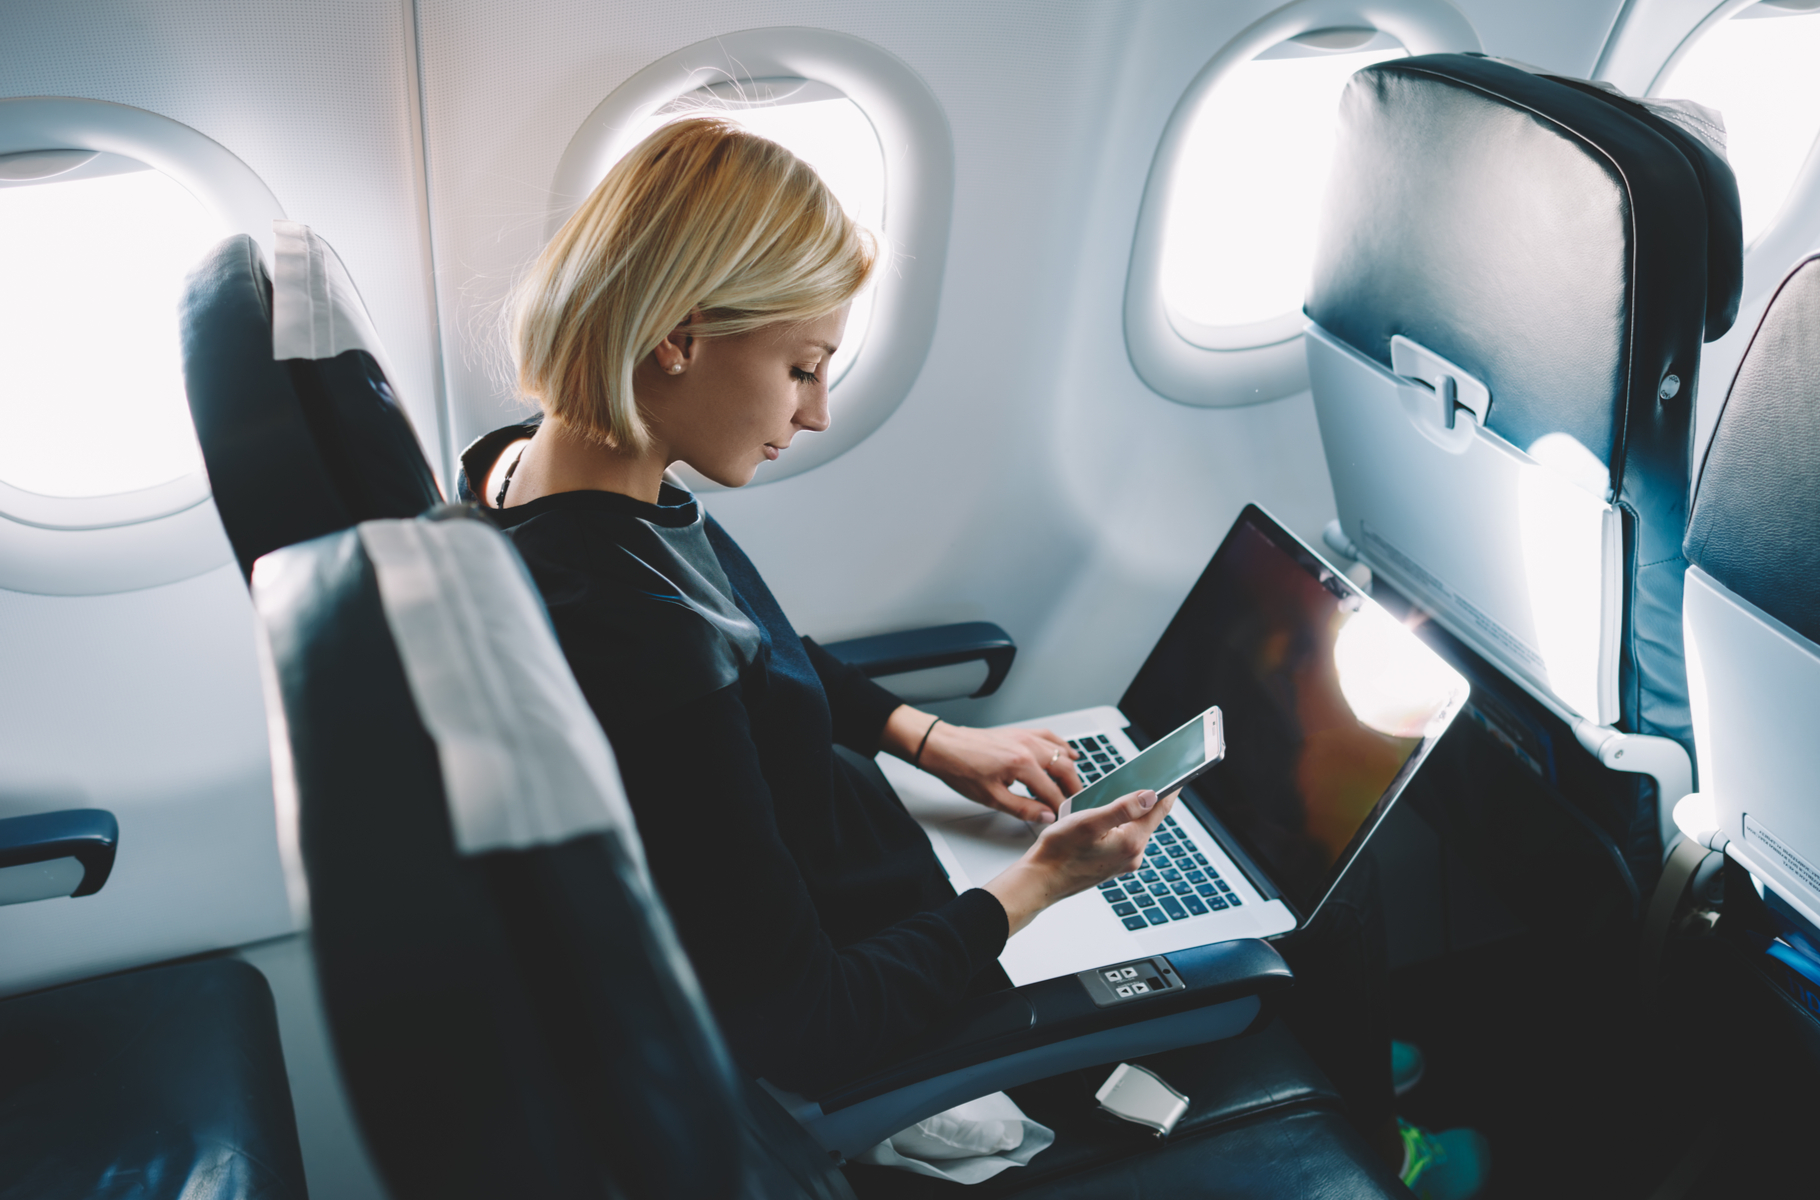 5 Ways Airlines Can Improve Their Image with .SUCKS